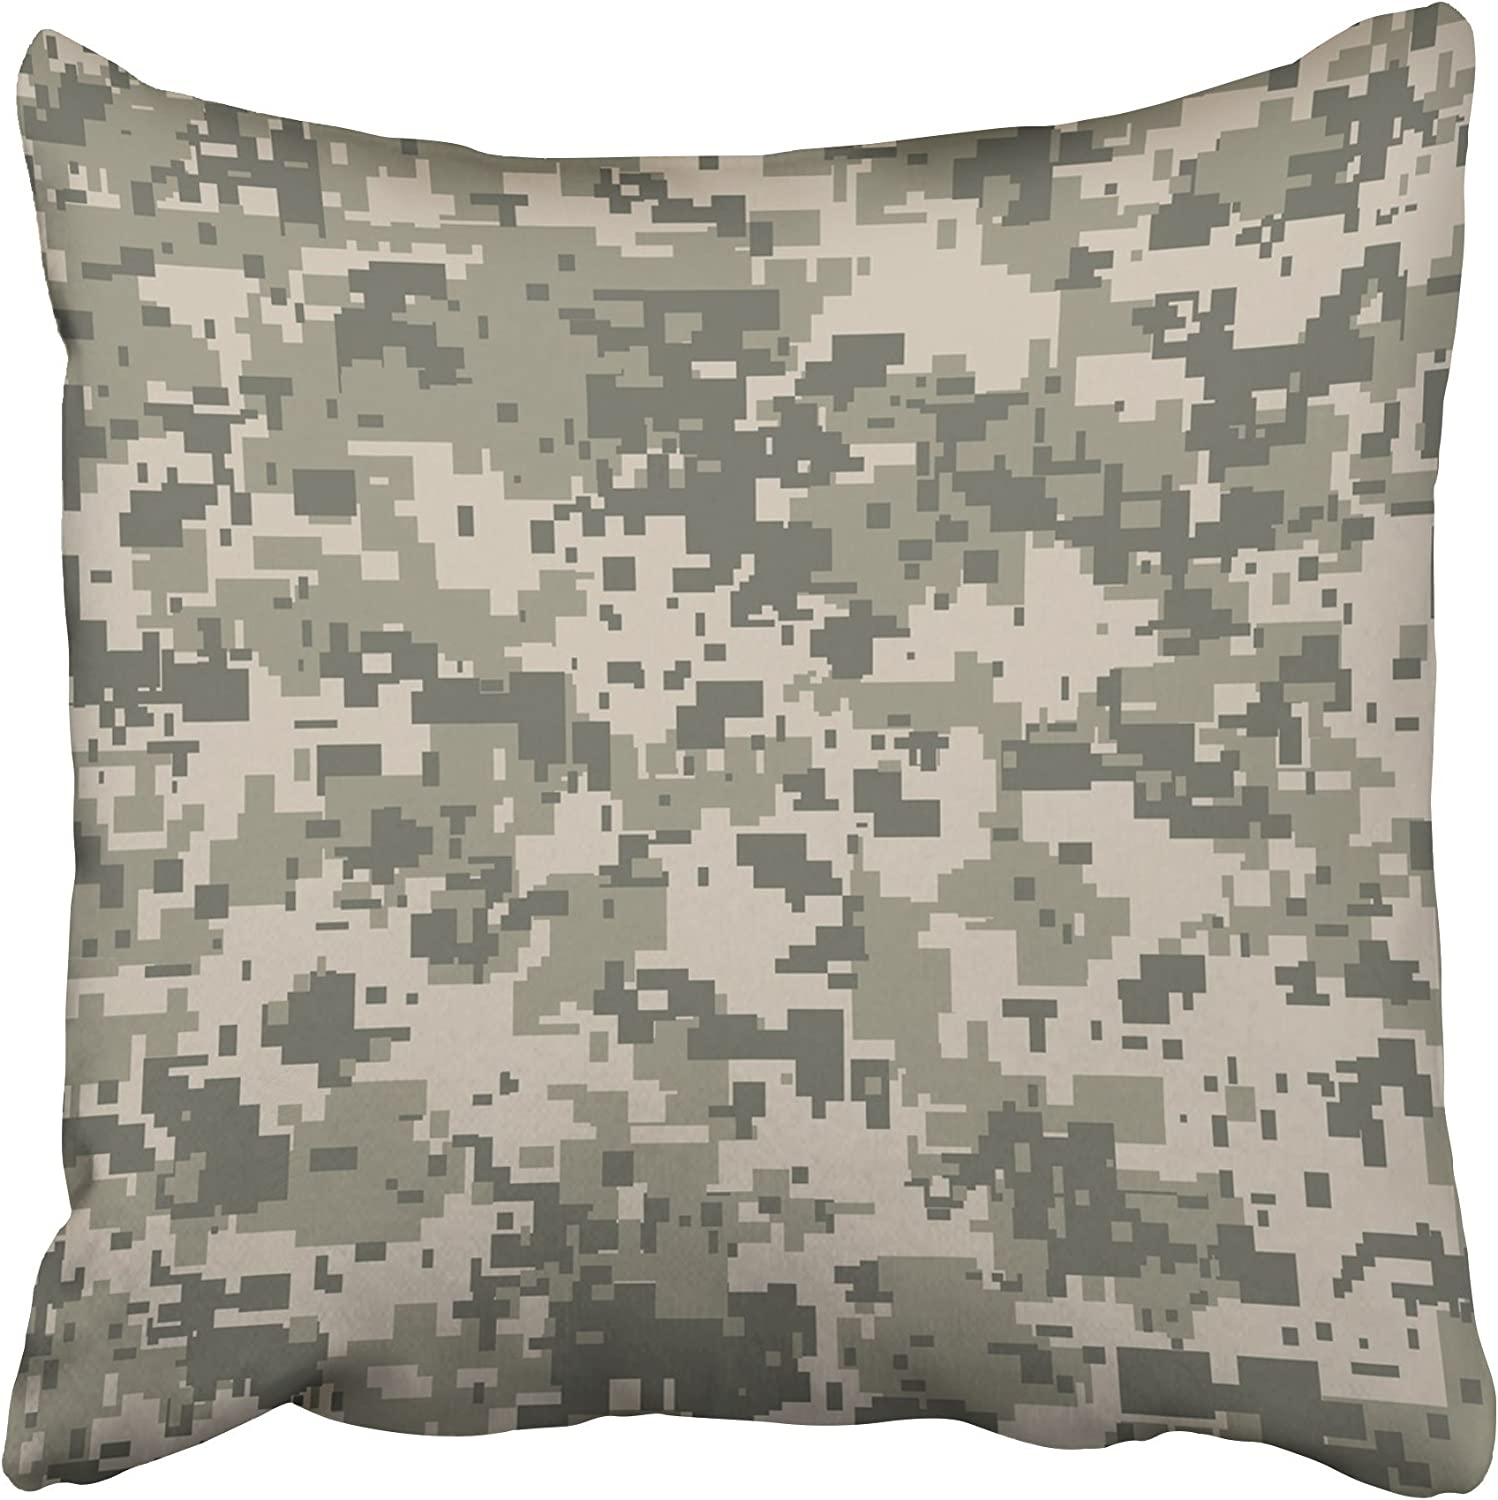 Amazon Com Emvency Decorative Throw Pillow Covers Cases Gray Camo Digital Pixel Camouflage Your Design Khaki Army Camoflauge Camoflage Digicam Military 16x16 Inches Pillowcases Case Cover Cushion Two Sided Home Kitchen